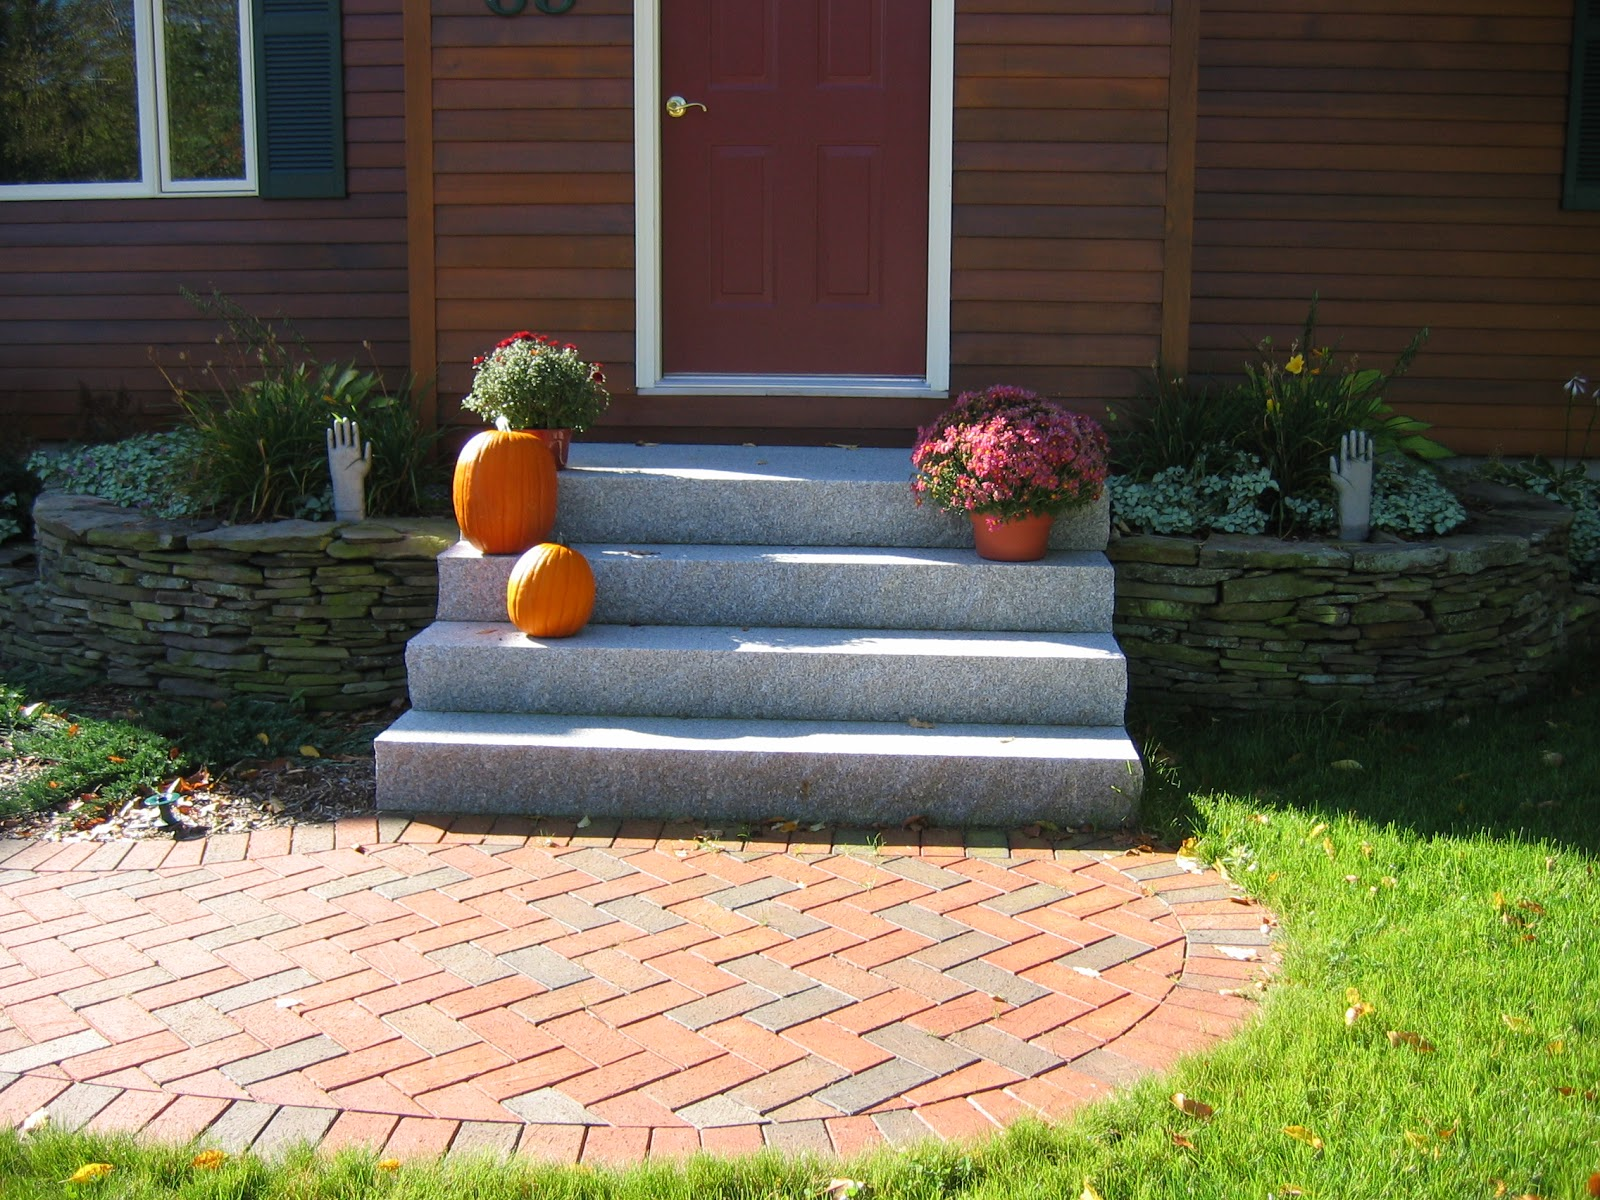 Woodbury Gray granite steps and a weathered fieldstone decorative wall